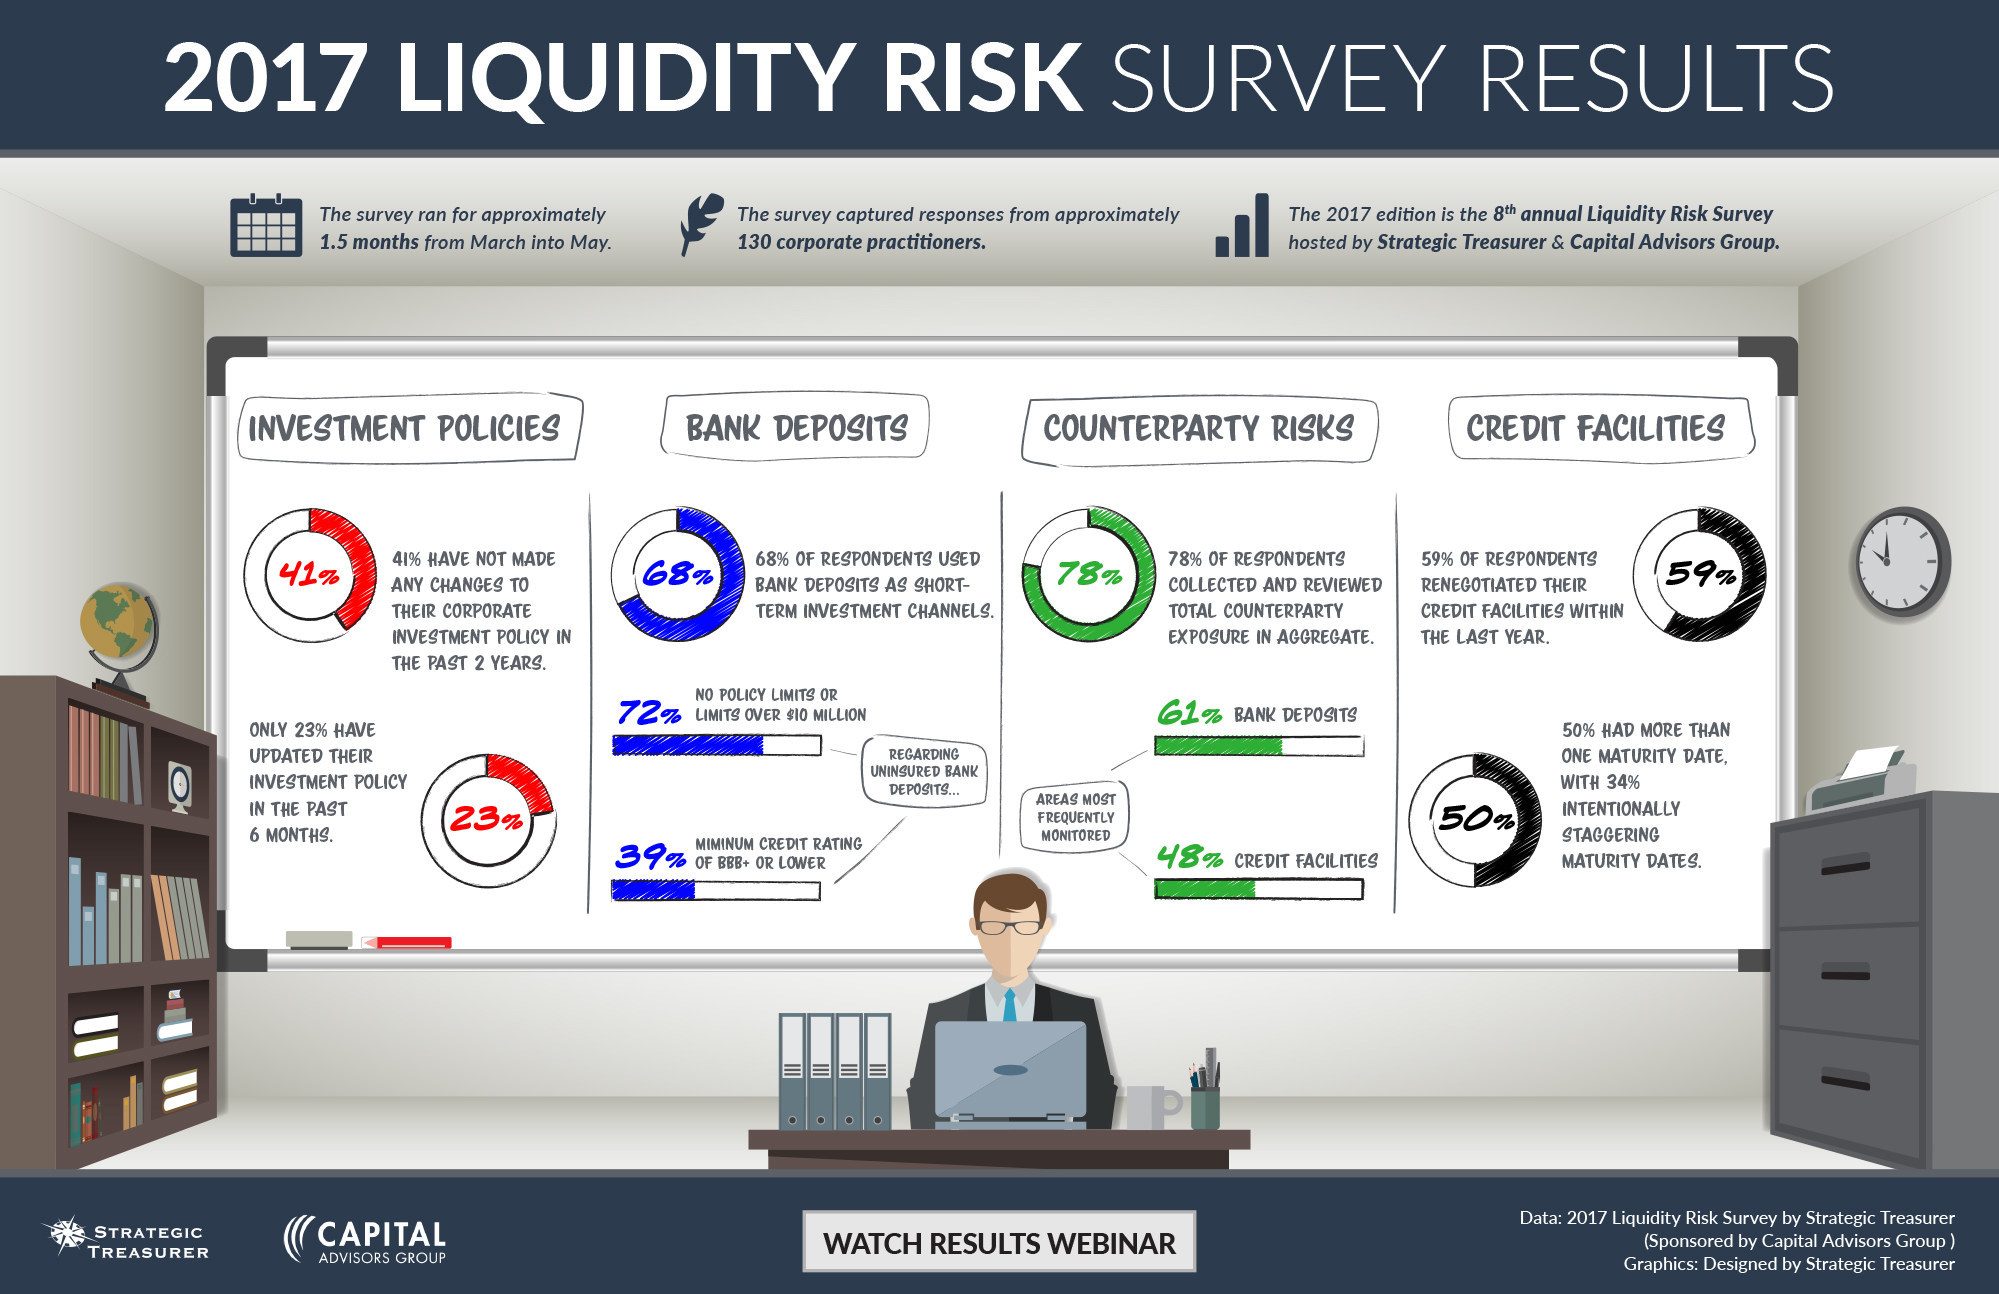 2017 Liquidity Risk Survey results released. Discover more by downloading the key findings infographic and watching the detailed results webinar at https://strategictreasurer.com/surveys/2017-liquidity-risk/.